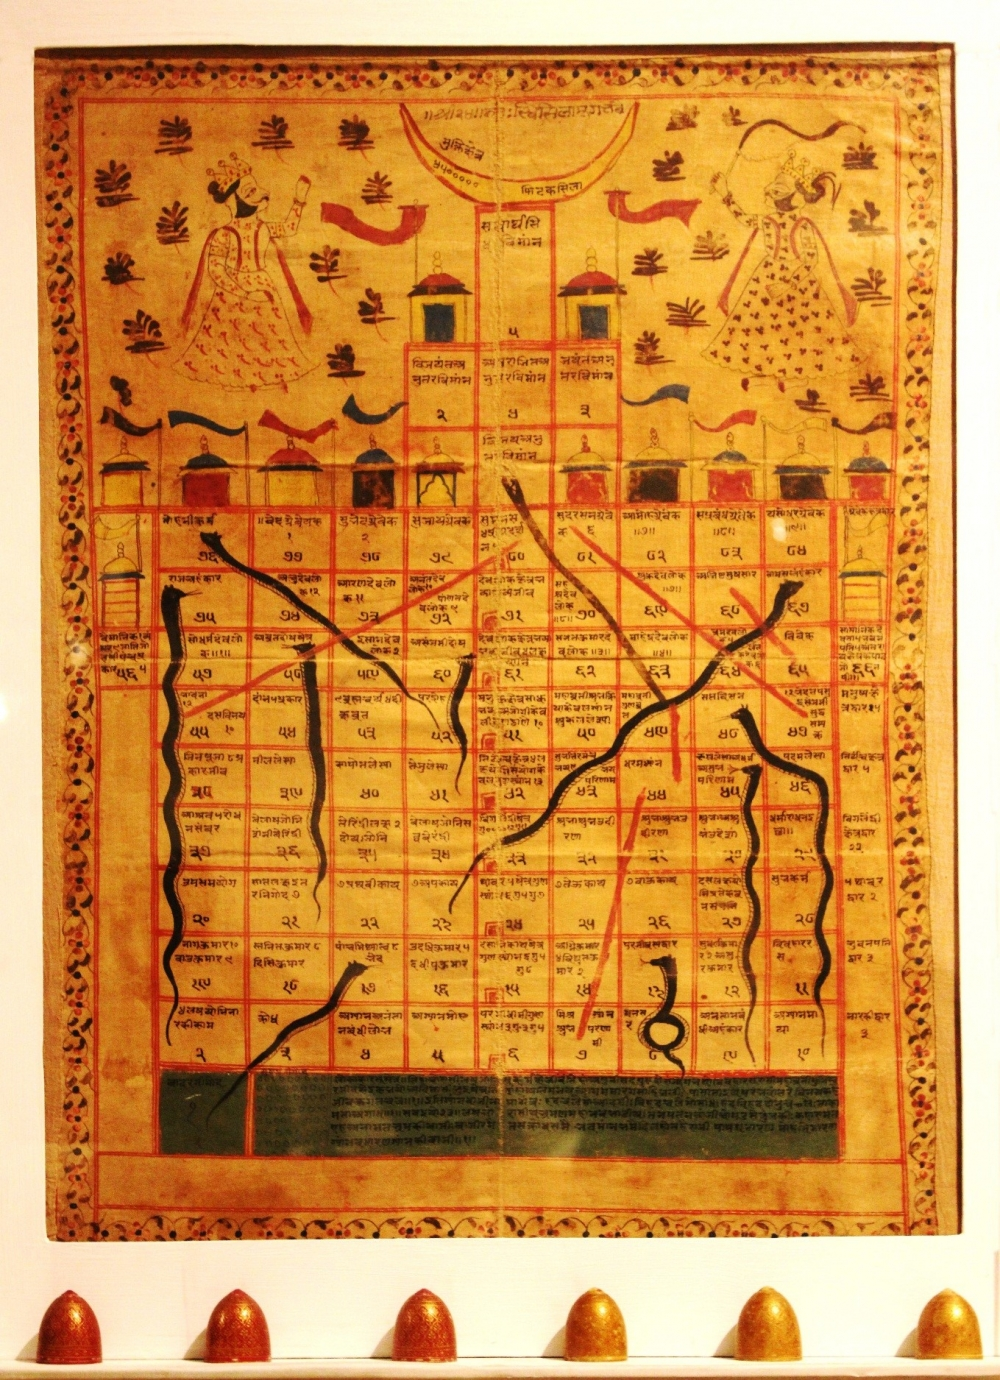 Fig.1. Jain gyan chaupar board dating back to late 18th century. Gyan chaupar was developed by Jain saints in the 13th century. (Courtesy: National Museum, New Delhi)